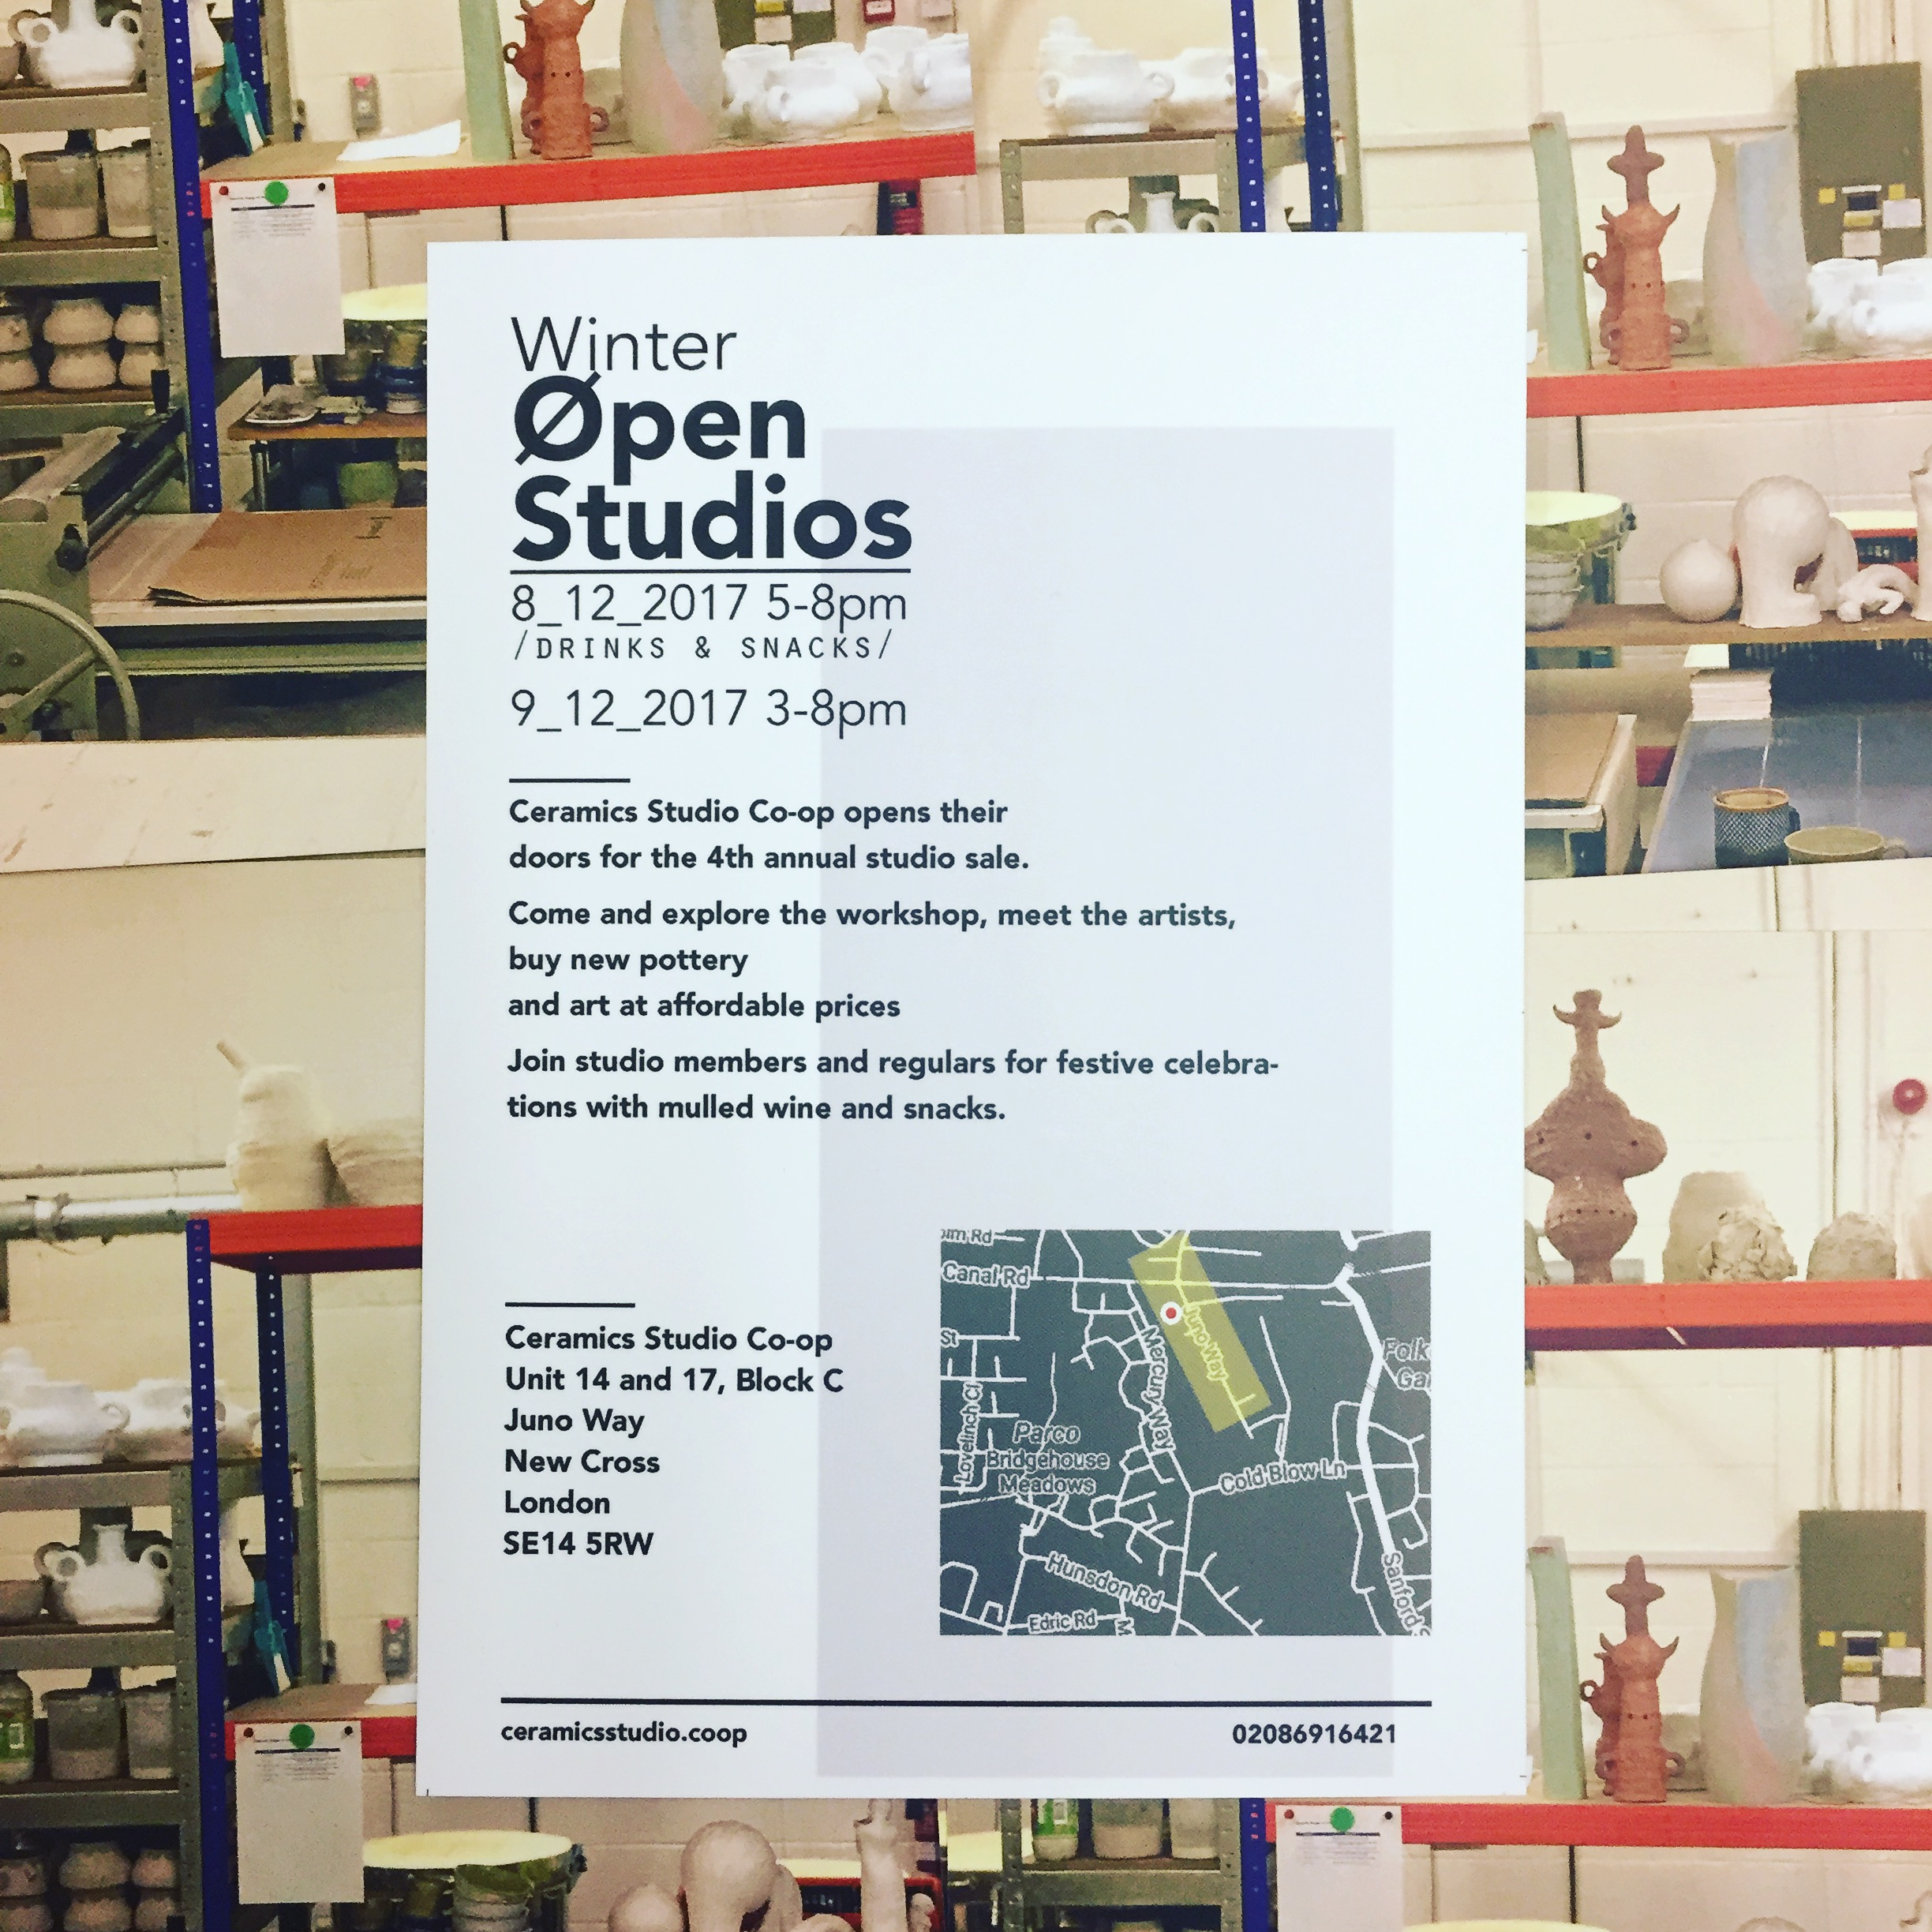 Winter Open Studios